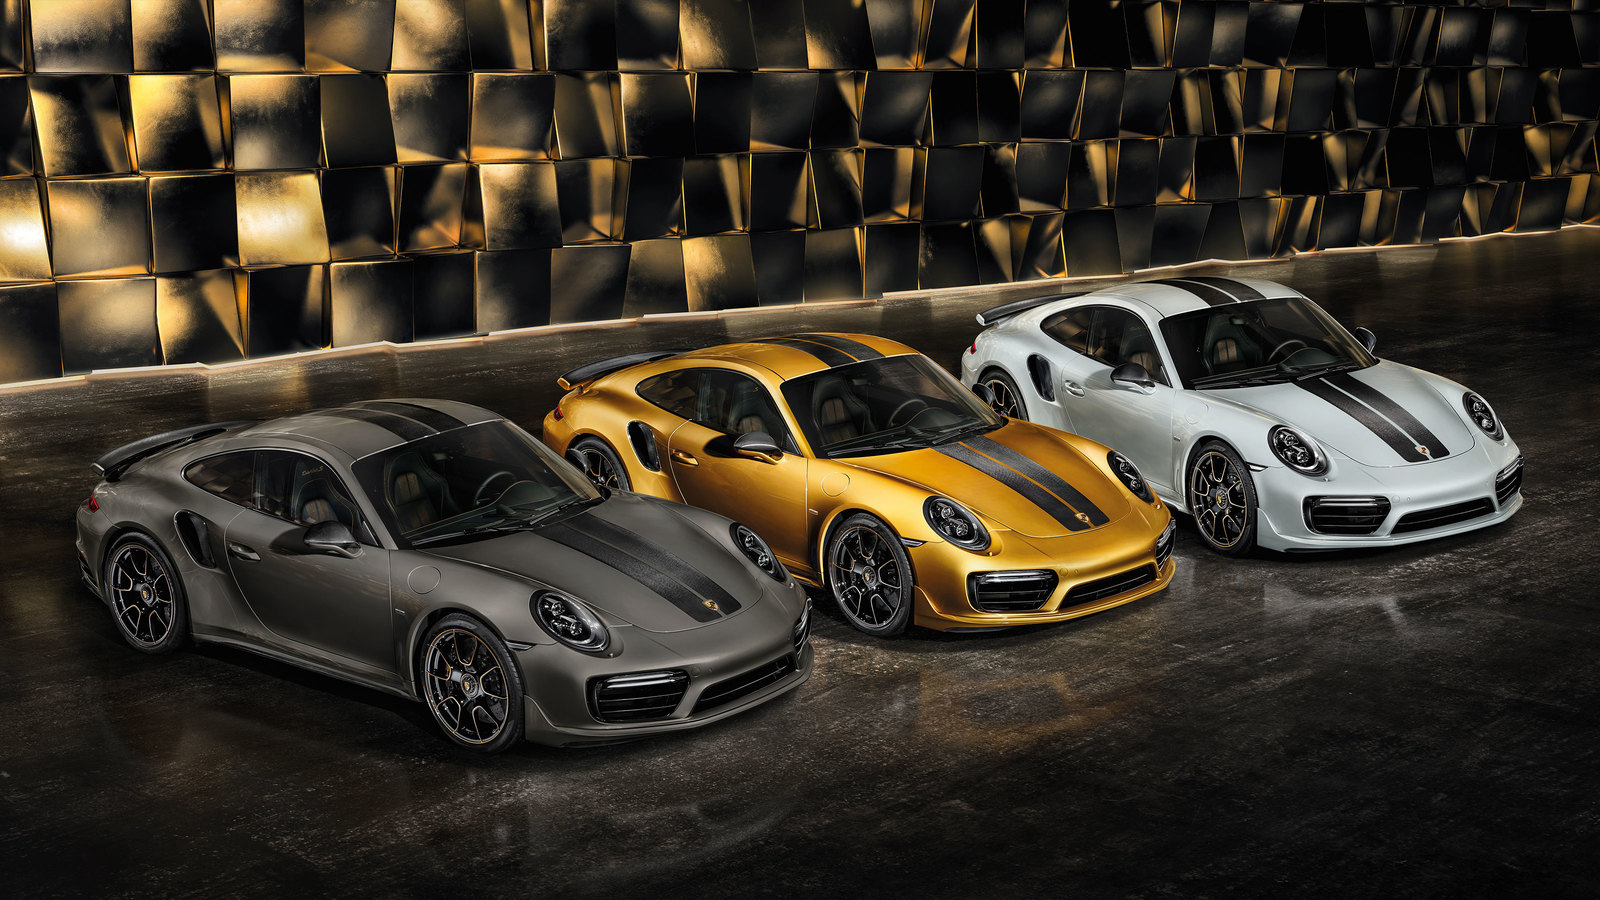 The Stunning New Porsche 911 Turbo S Exclusive Series